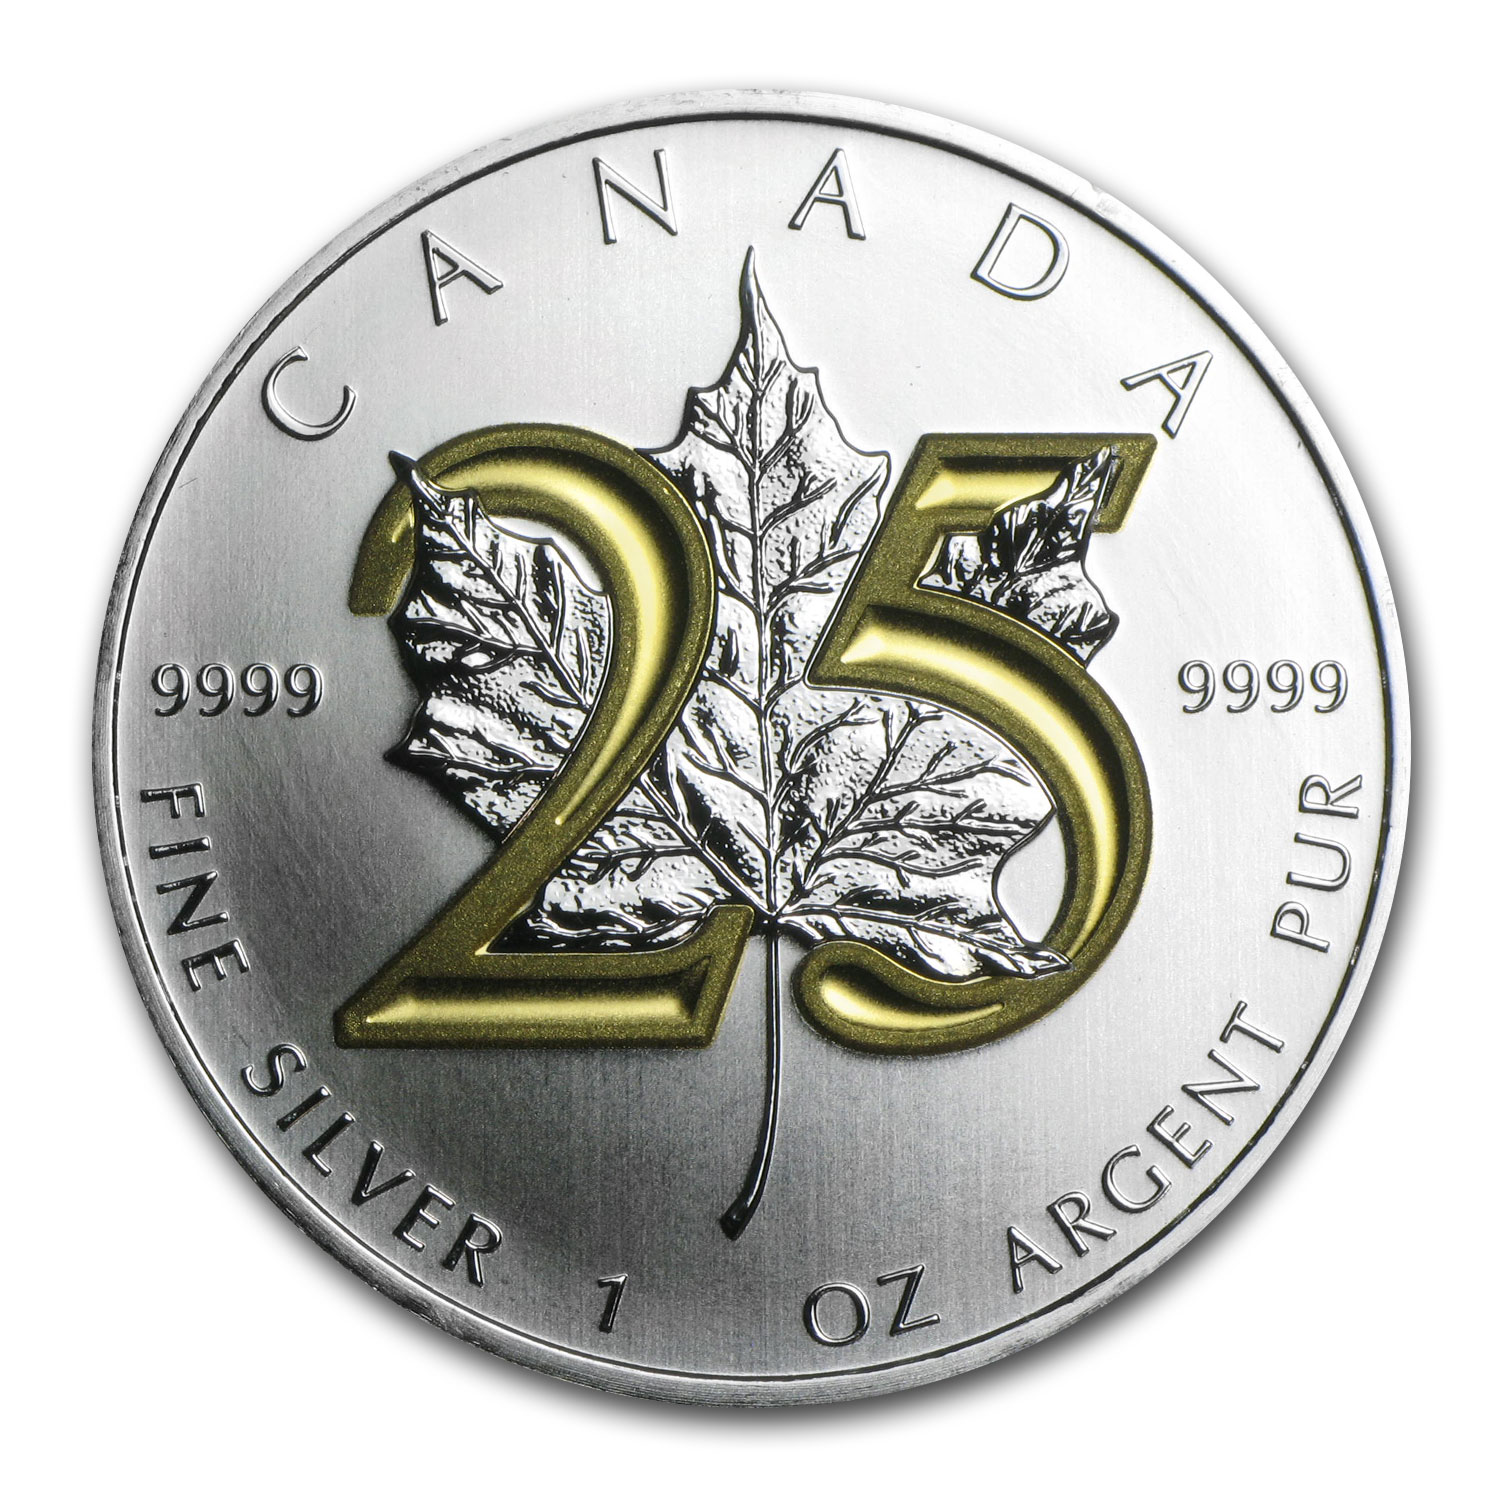 2013 1 oz Silver Canadian Maple Leaf - 25th Anniversary - Gilded